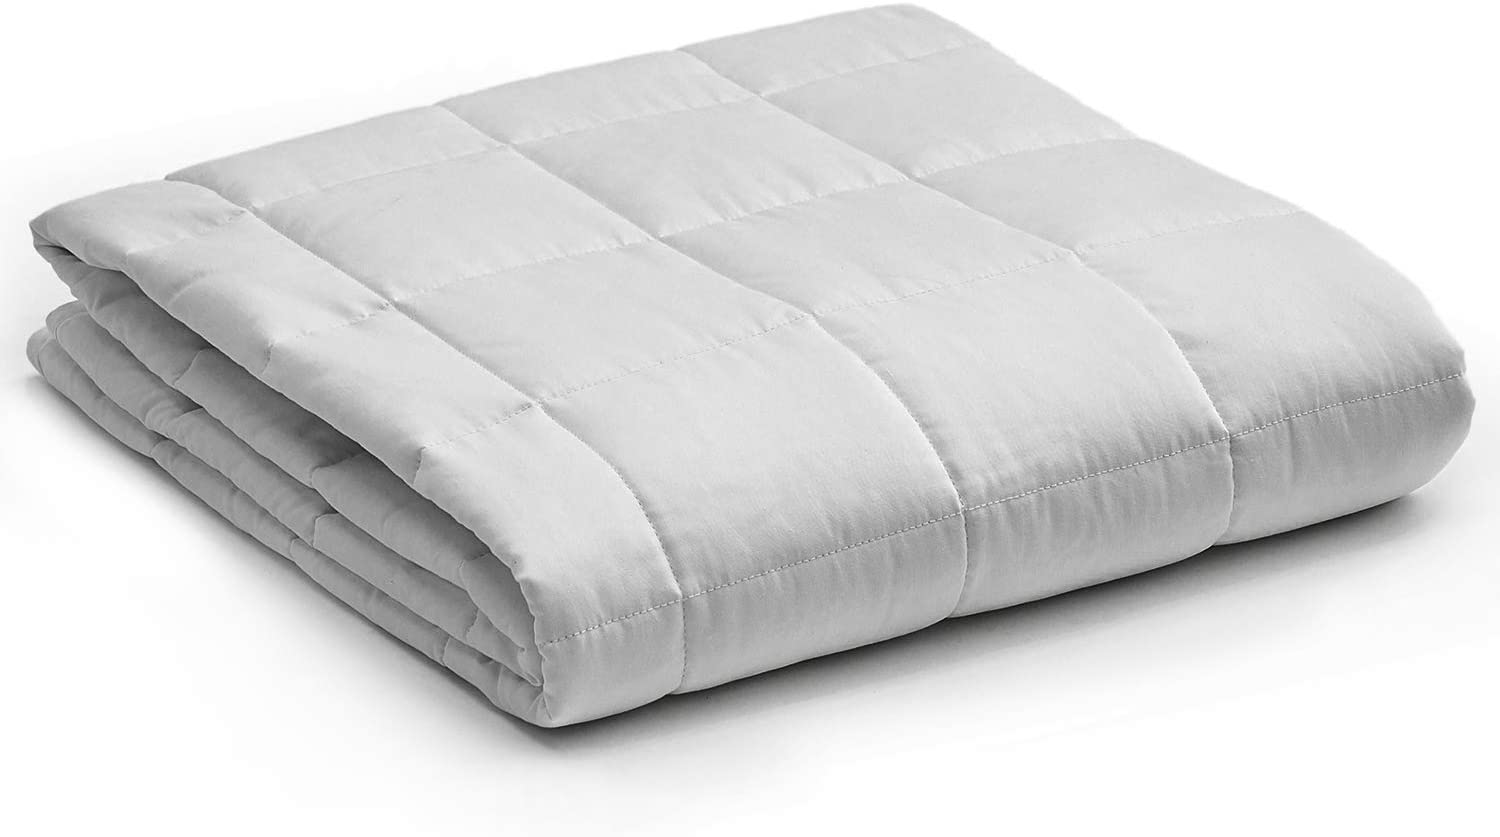 YnM Weighted Blanket — Heavy 100% Oeko-Tex Certified Cotton Material with Premium Glass Beads (Light Grey, 60''x80'' 22lbs), Suit for One Person(~210lb) Use on Queen/King Bed